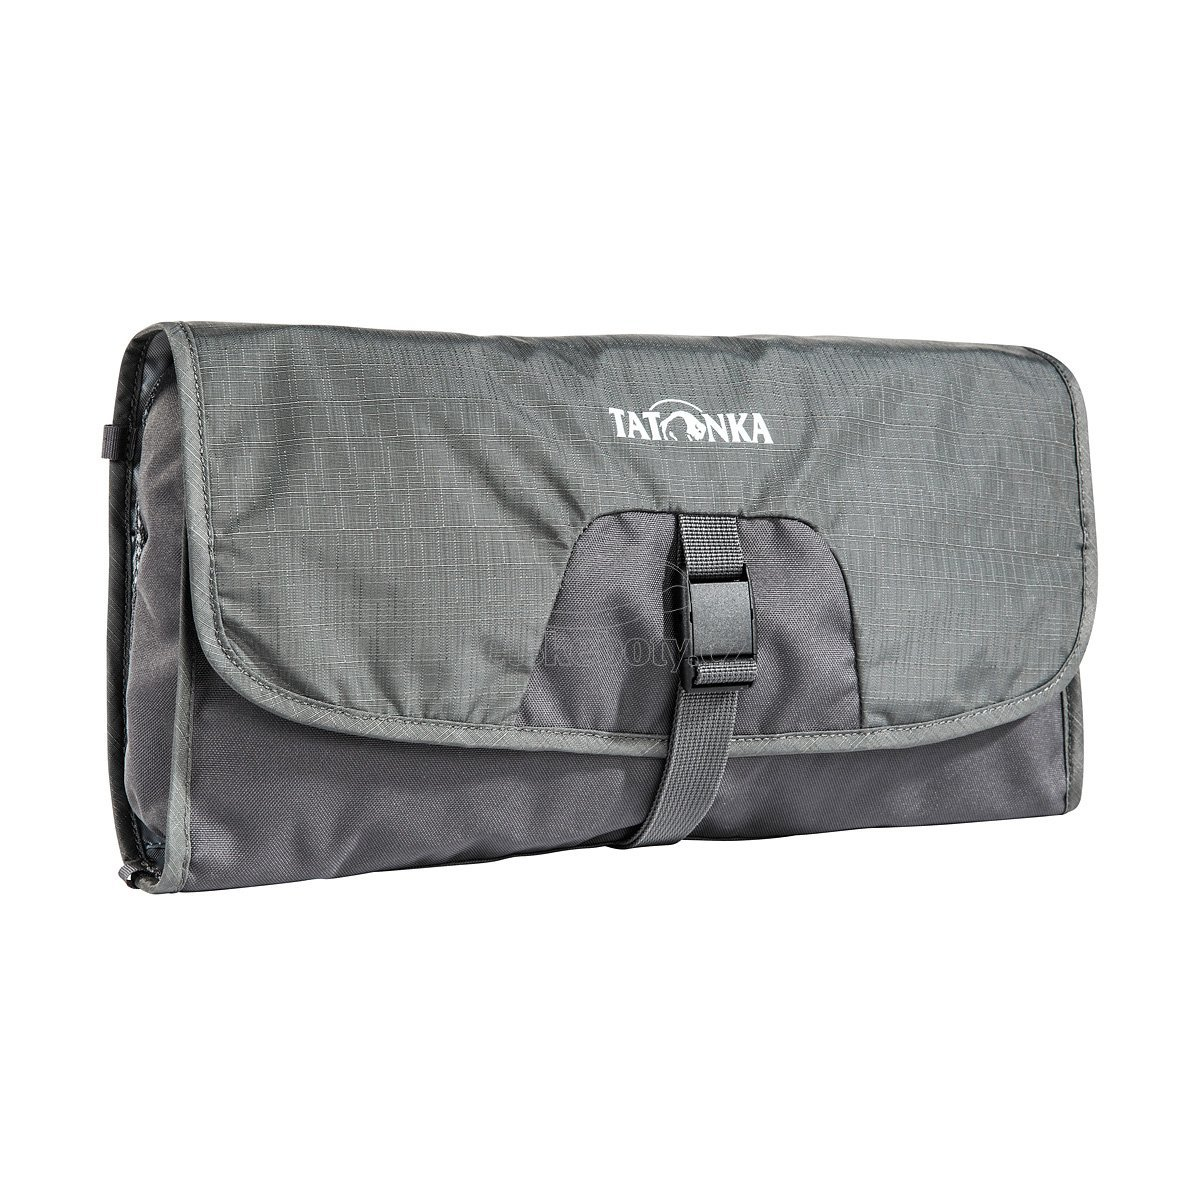 Tatonka Travelcare (titan grey)